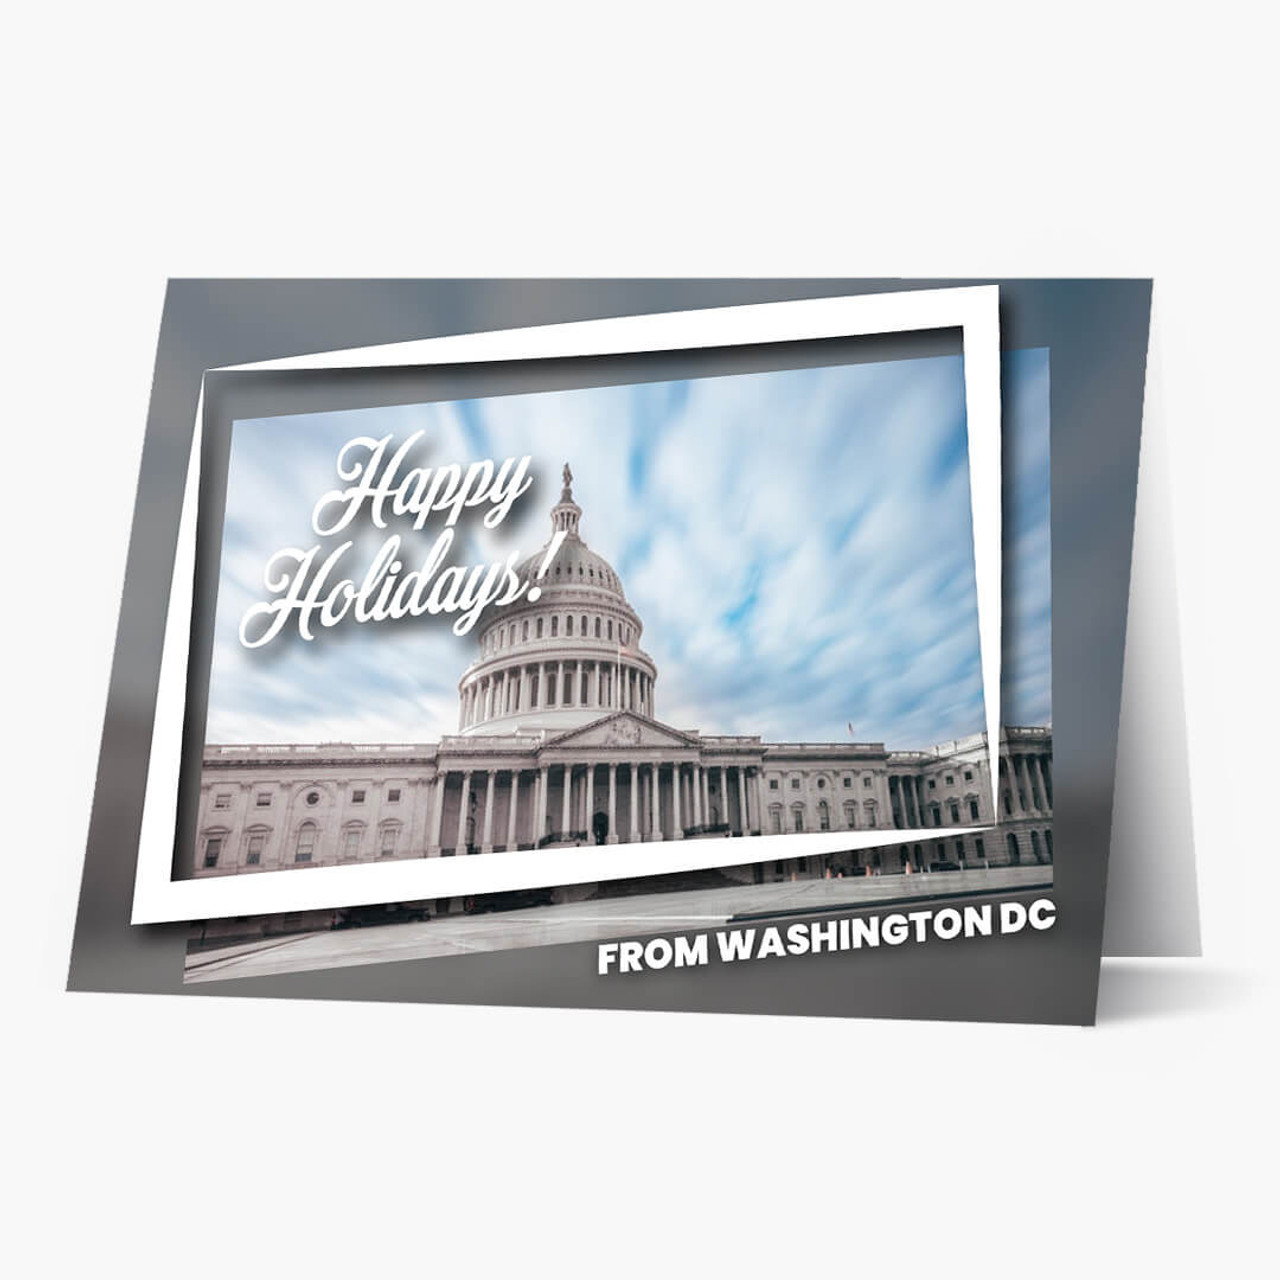 Holiday City Postcards - Washington, DC Christmas Card